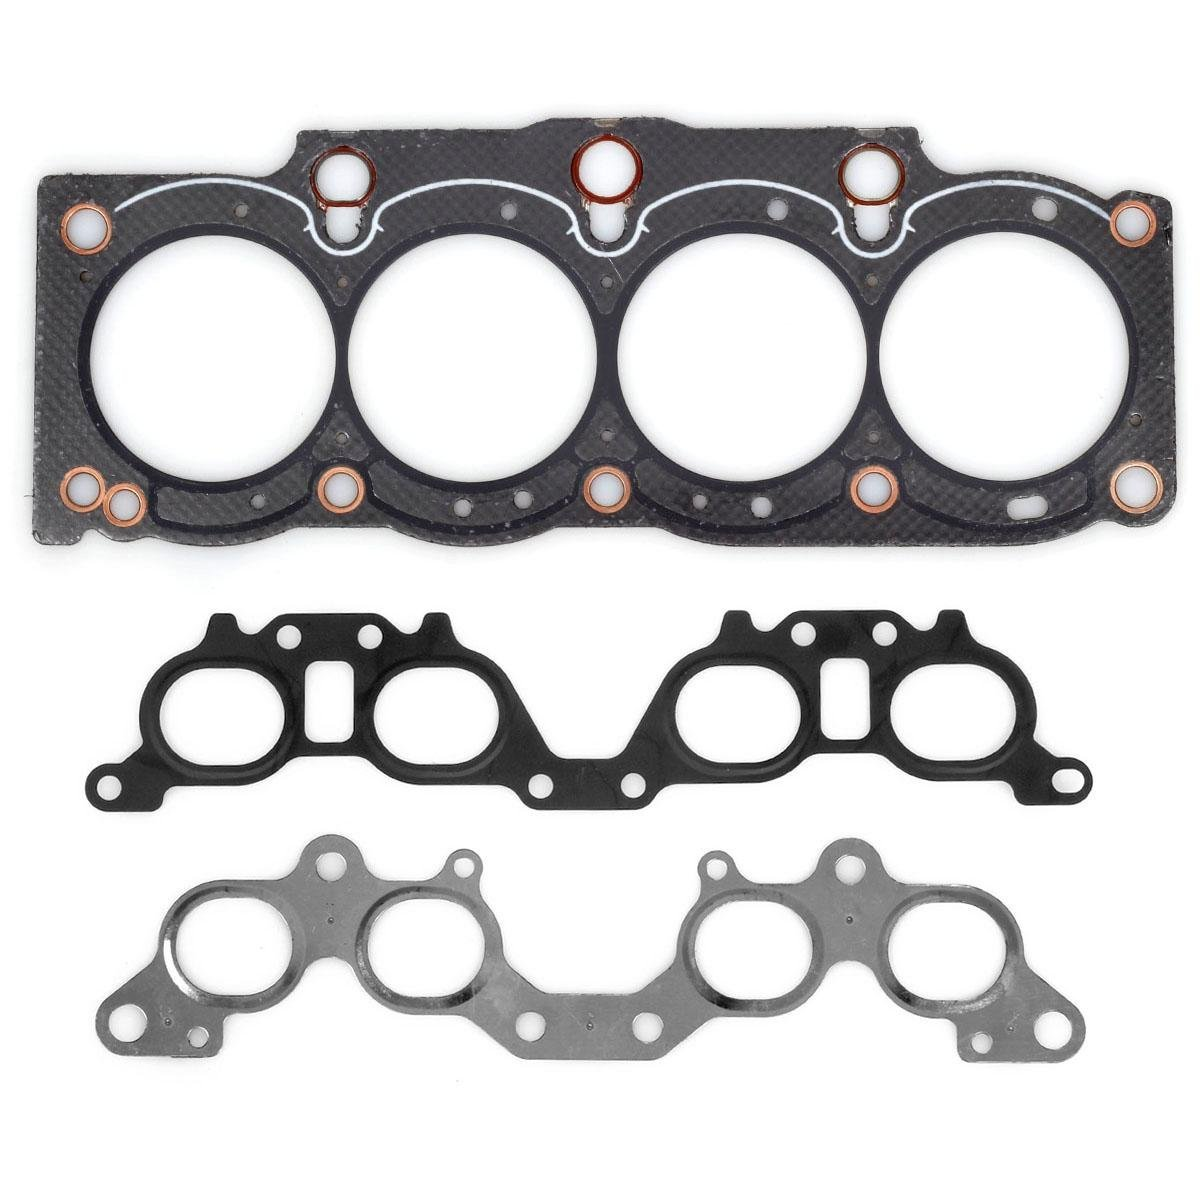 Cylinder Head Gasket kit Replacement for Toyota Celica Camry MR2 2.2L 5SFE 90-97